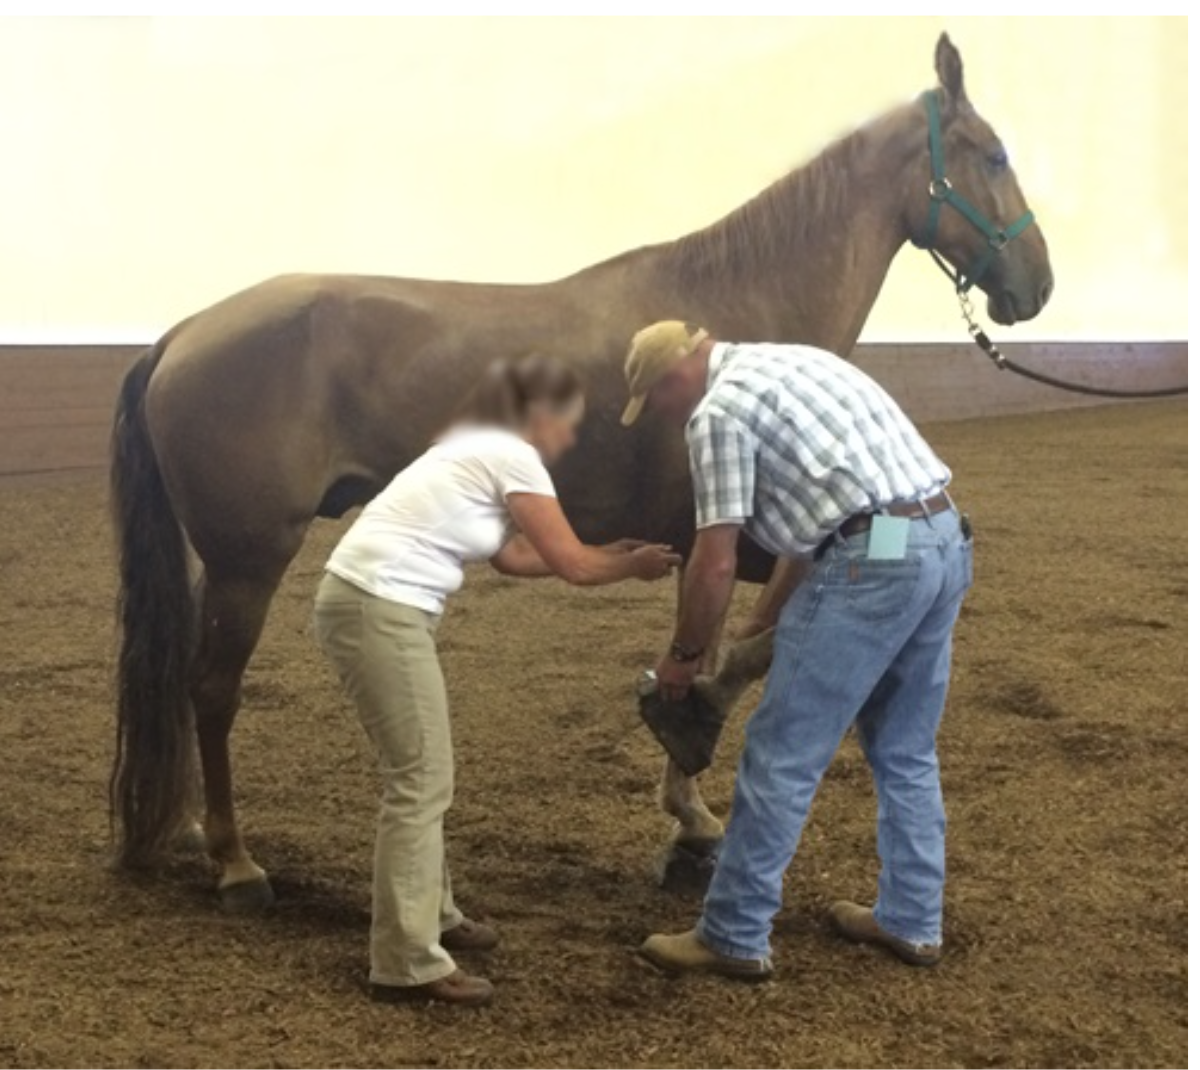 USDA VET EXAMINES GLIMMER - JULY 31, 2015 - USDA VIDEOGRAPHER DOCUMENTS CONDITION OF GLIMMER'S FRONT FEET